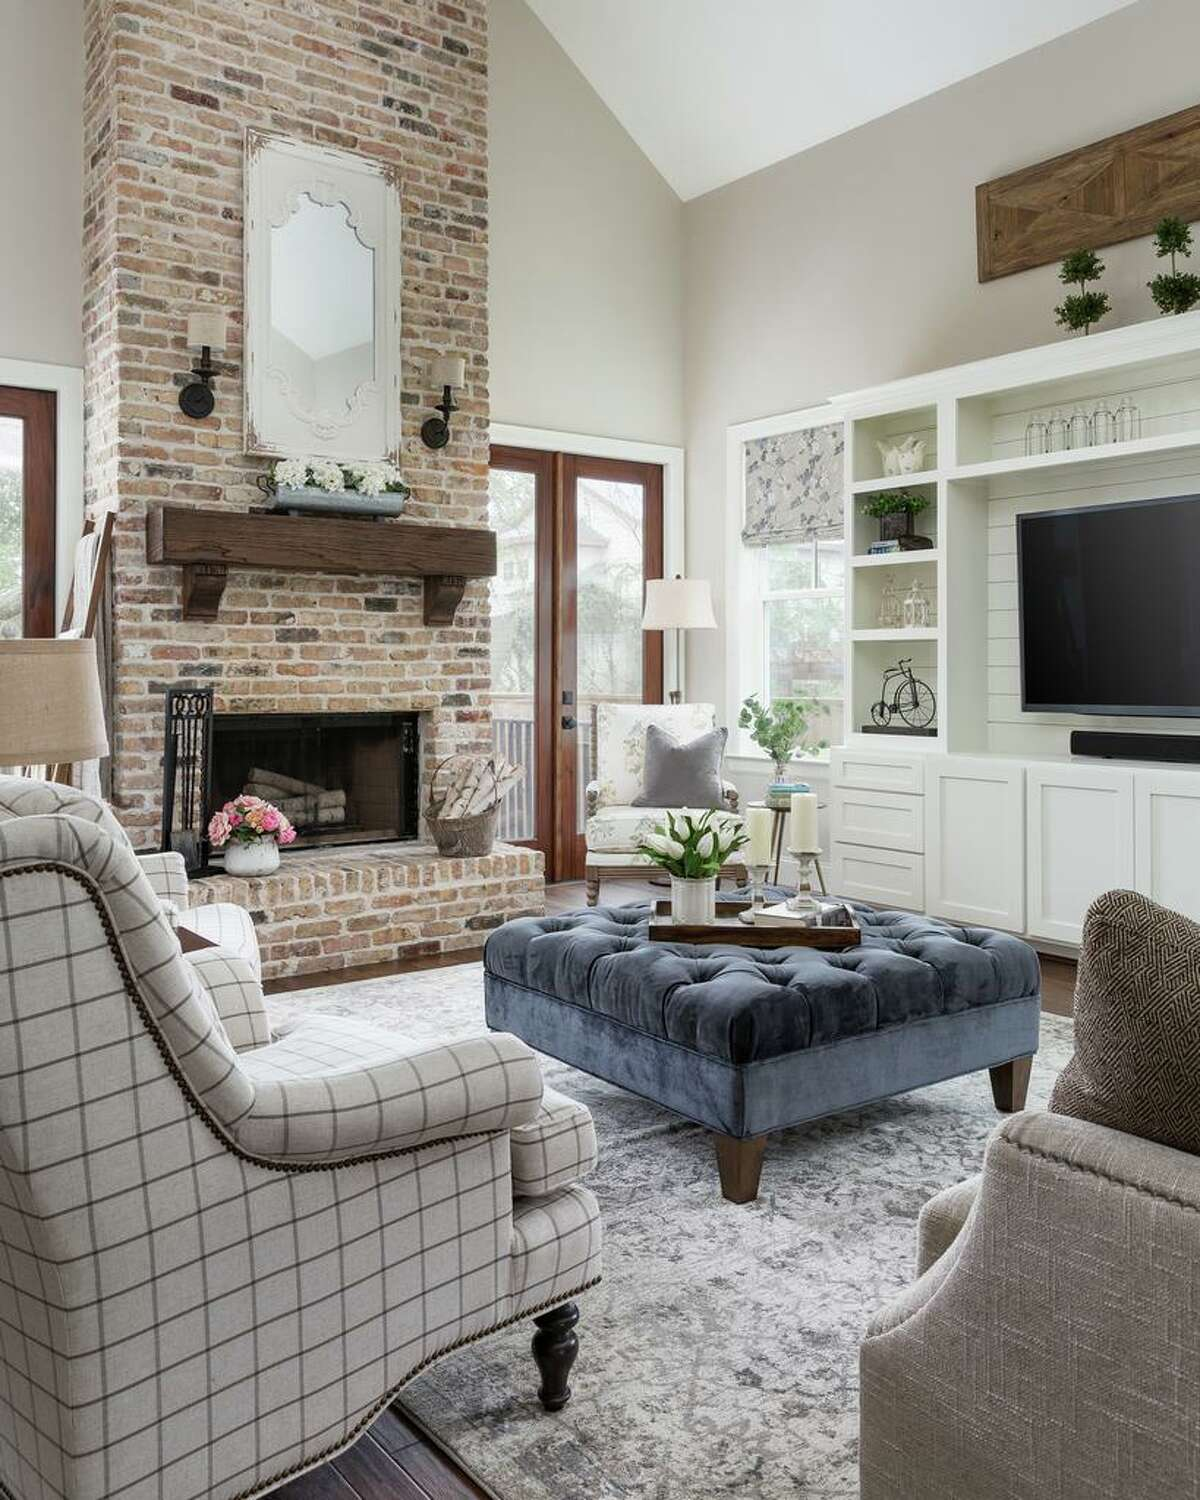 An upholstered ottoman serves as a coffee table in the Richards' family room.